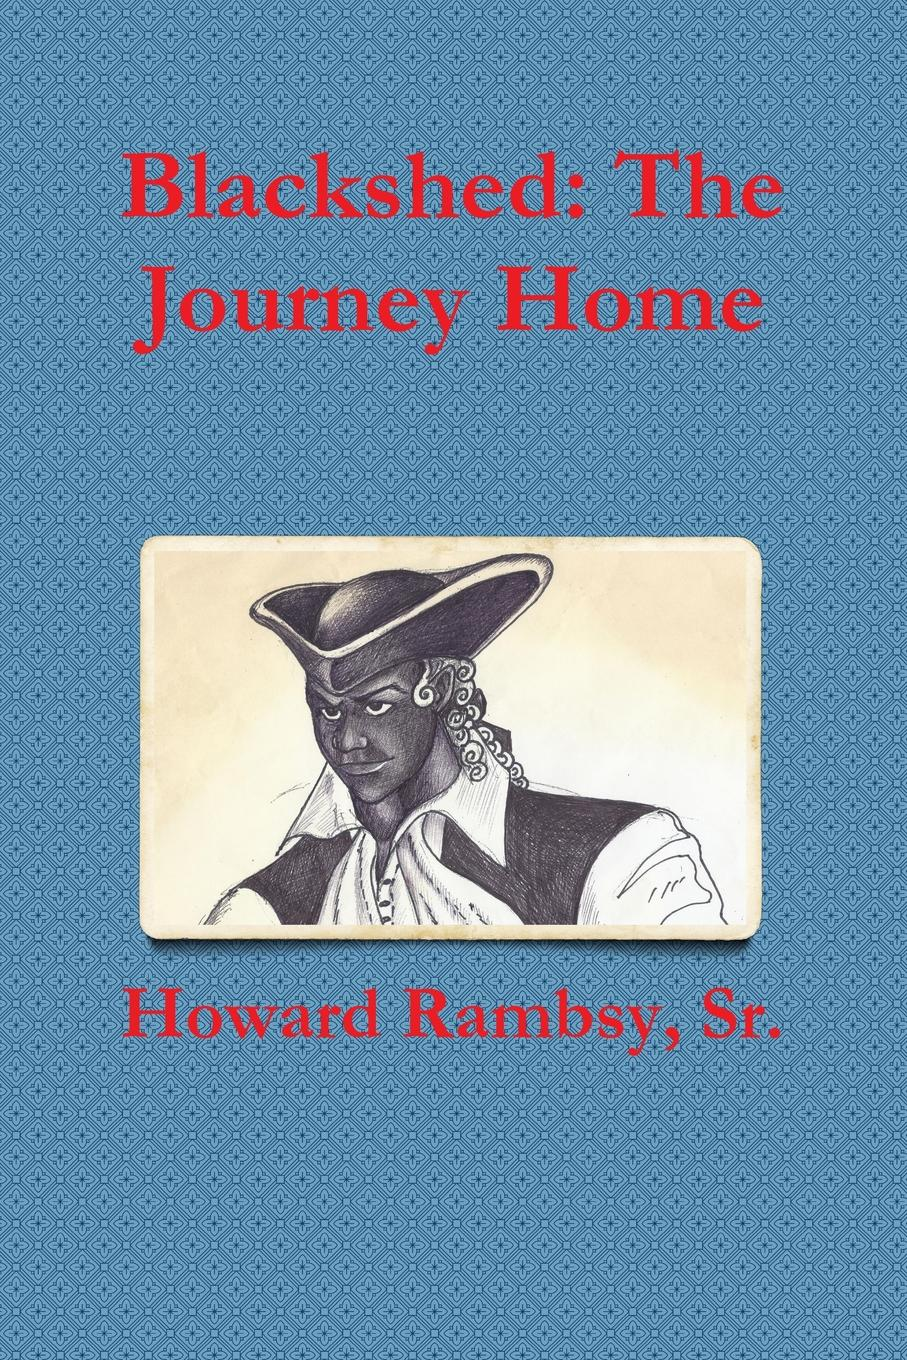 Sr. Howard Rambsy Blackshed. The Journey Home the family mousetrap